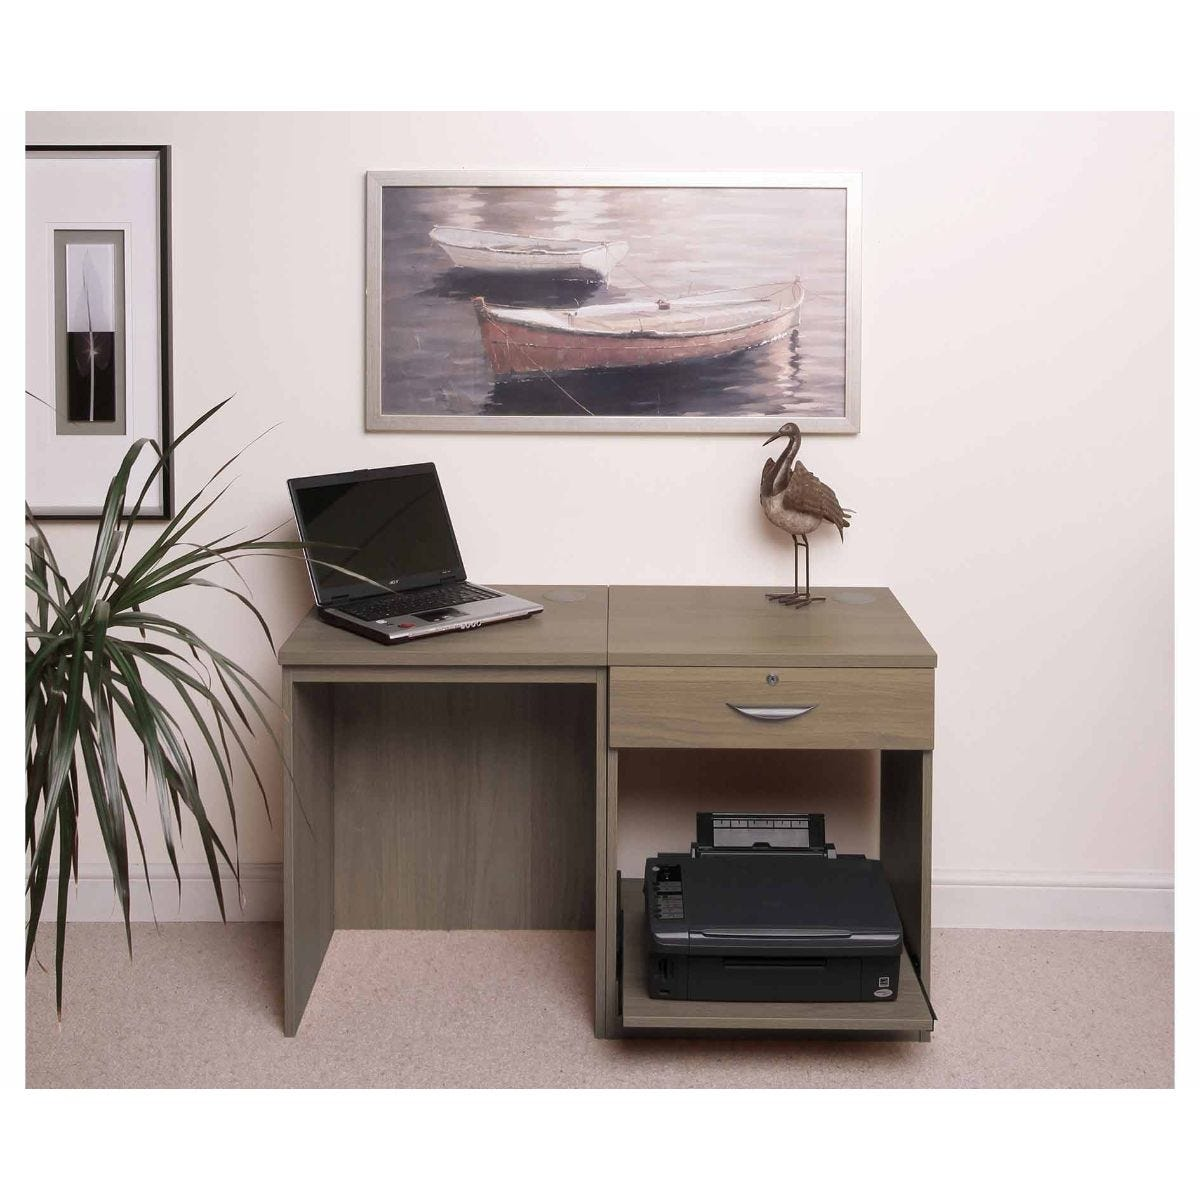 R White Home Office Desk Set with Drawer, English Oak